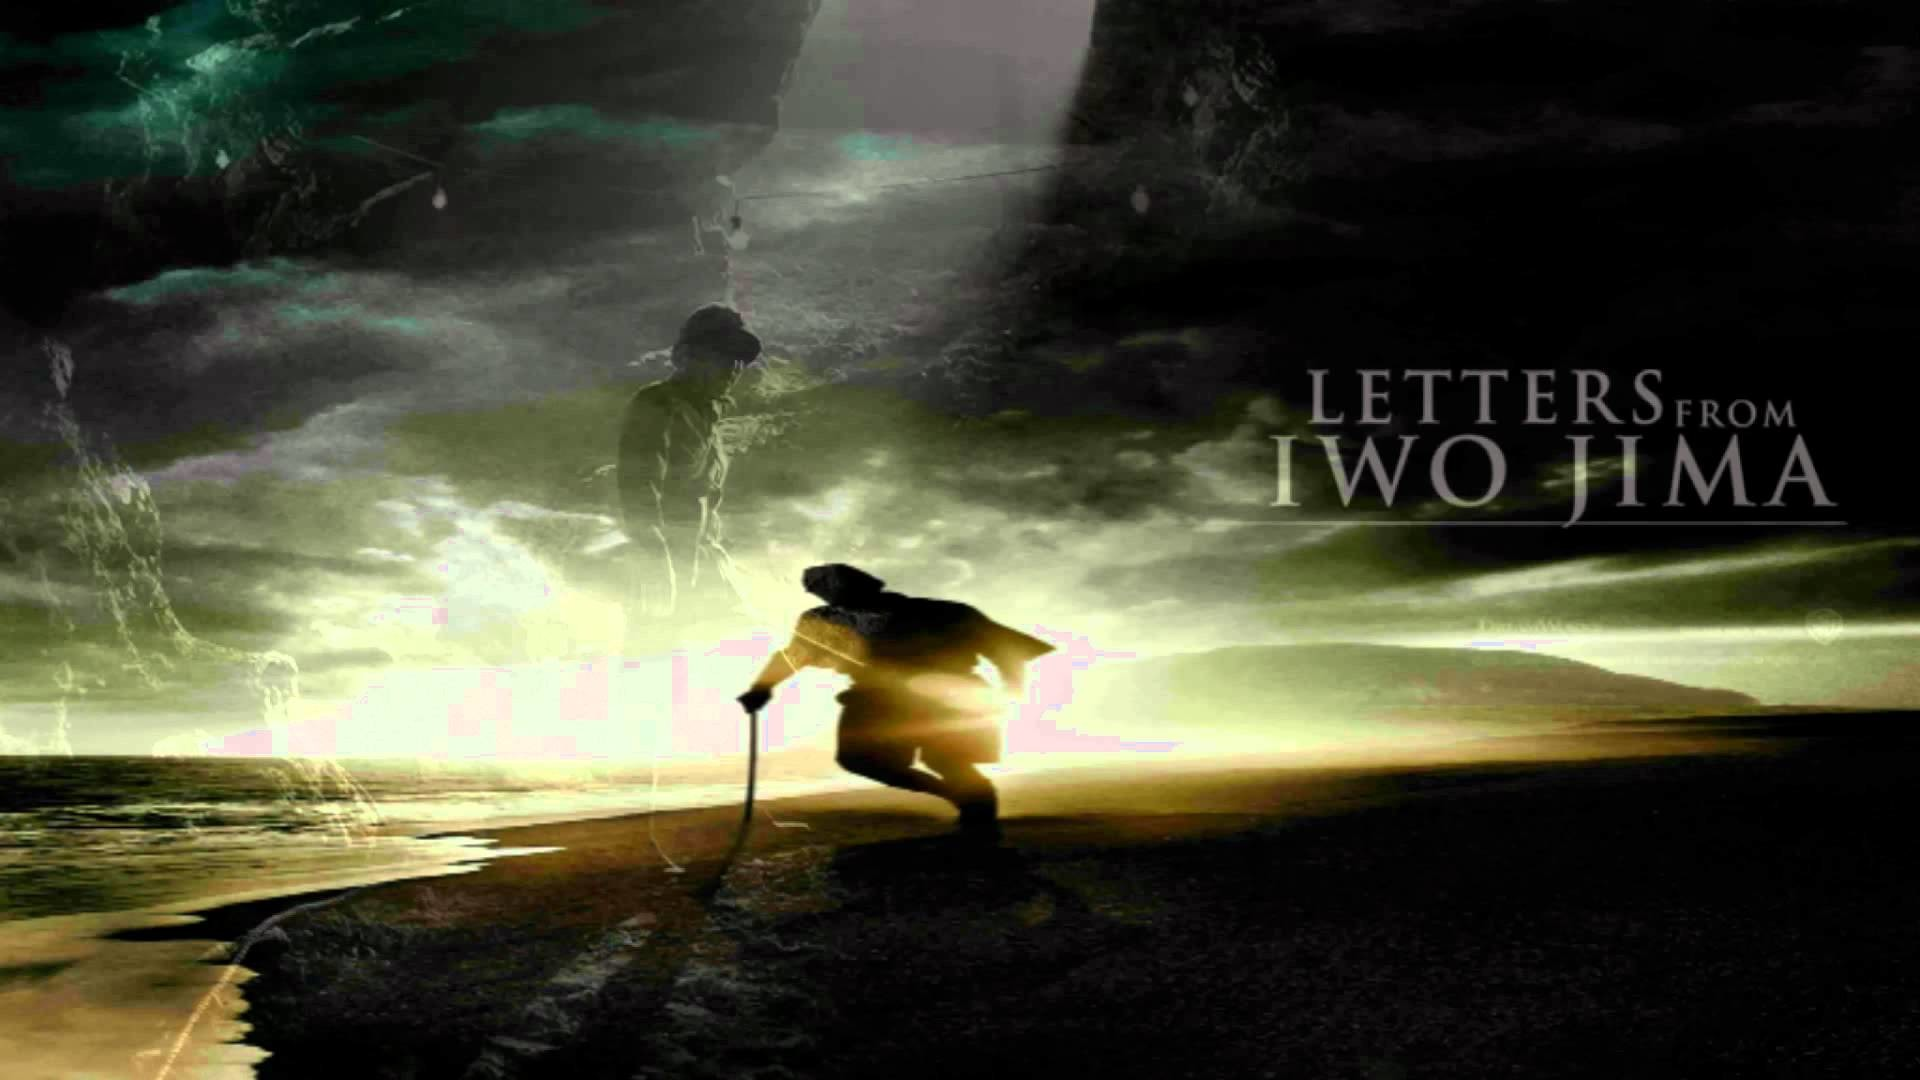 Res: 1920x1080, letter from iwo jima